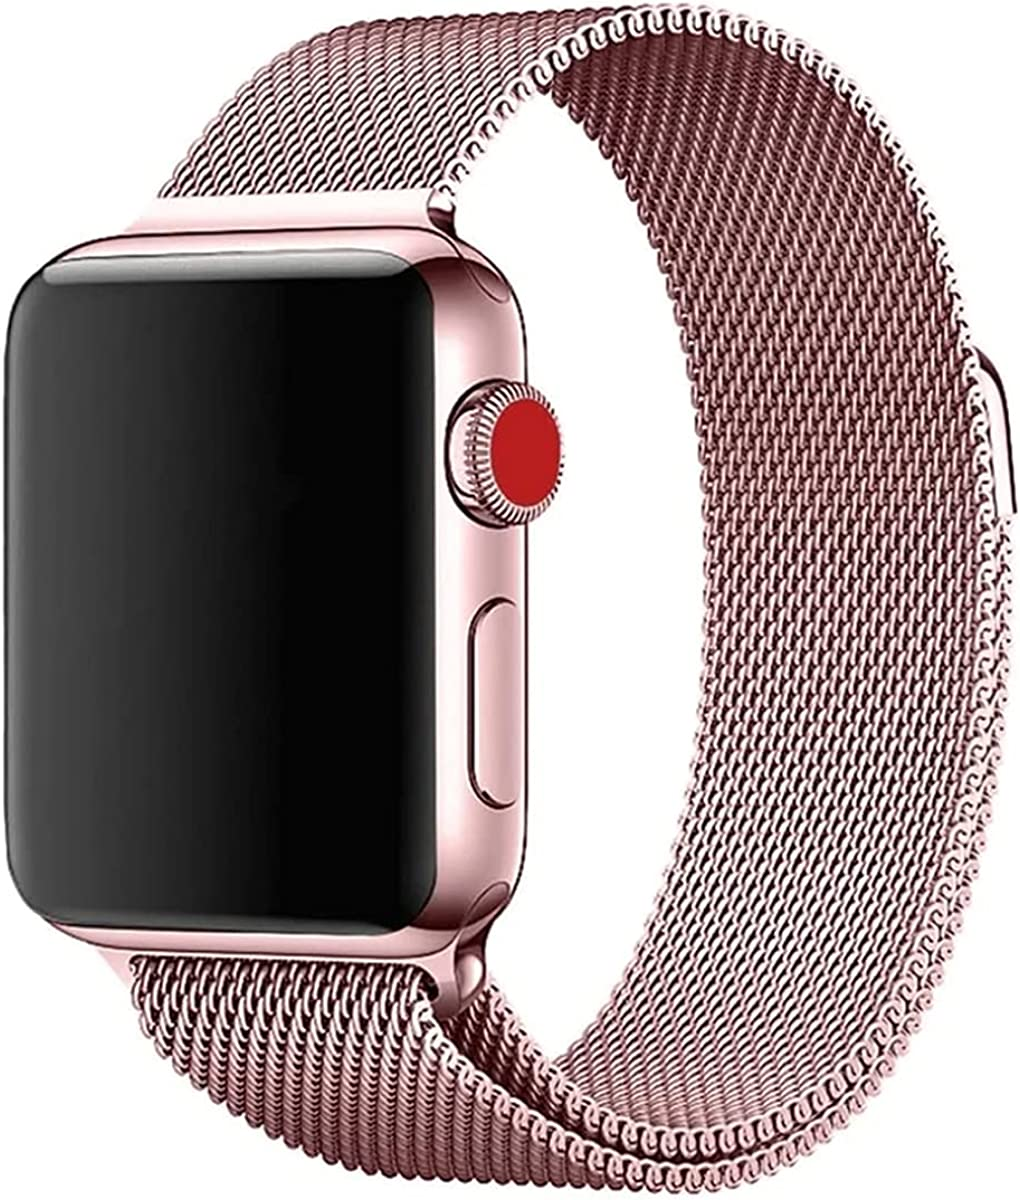 Stainless Steel Magnetic Absorption Strap For iWatch Metal Mesh Quick Release Wristband Sport Loop Compatible for iWatch Band Series 6/SE/5/4/3/2/1